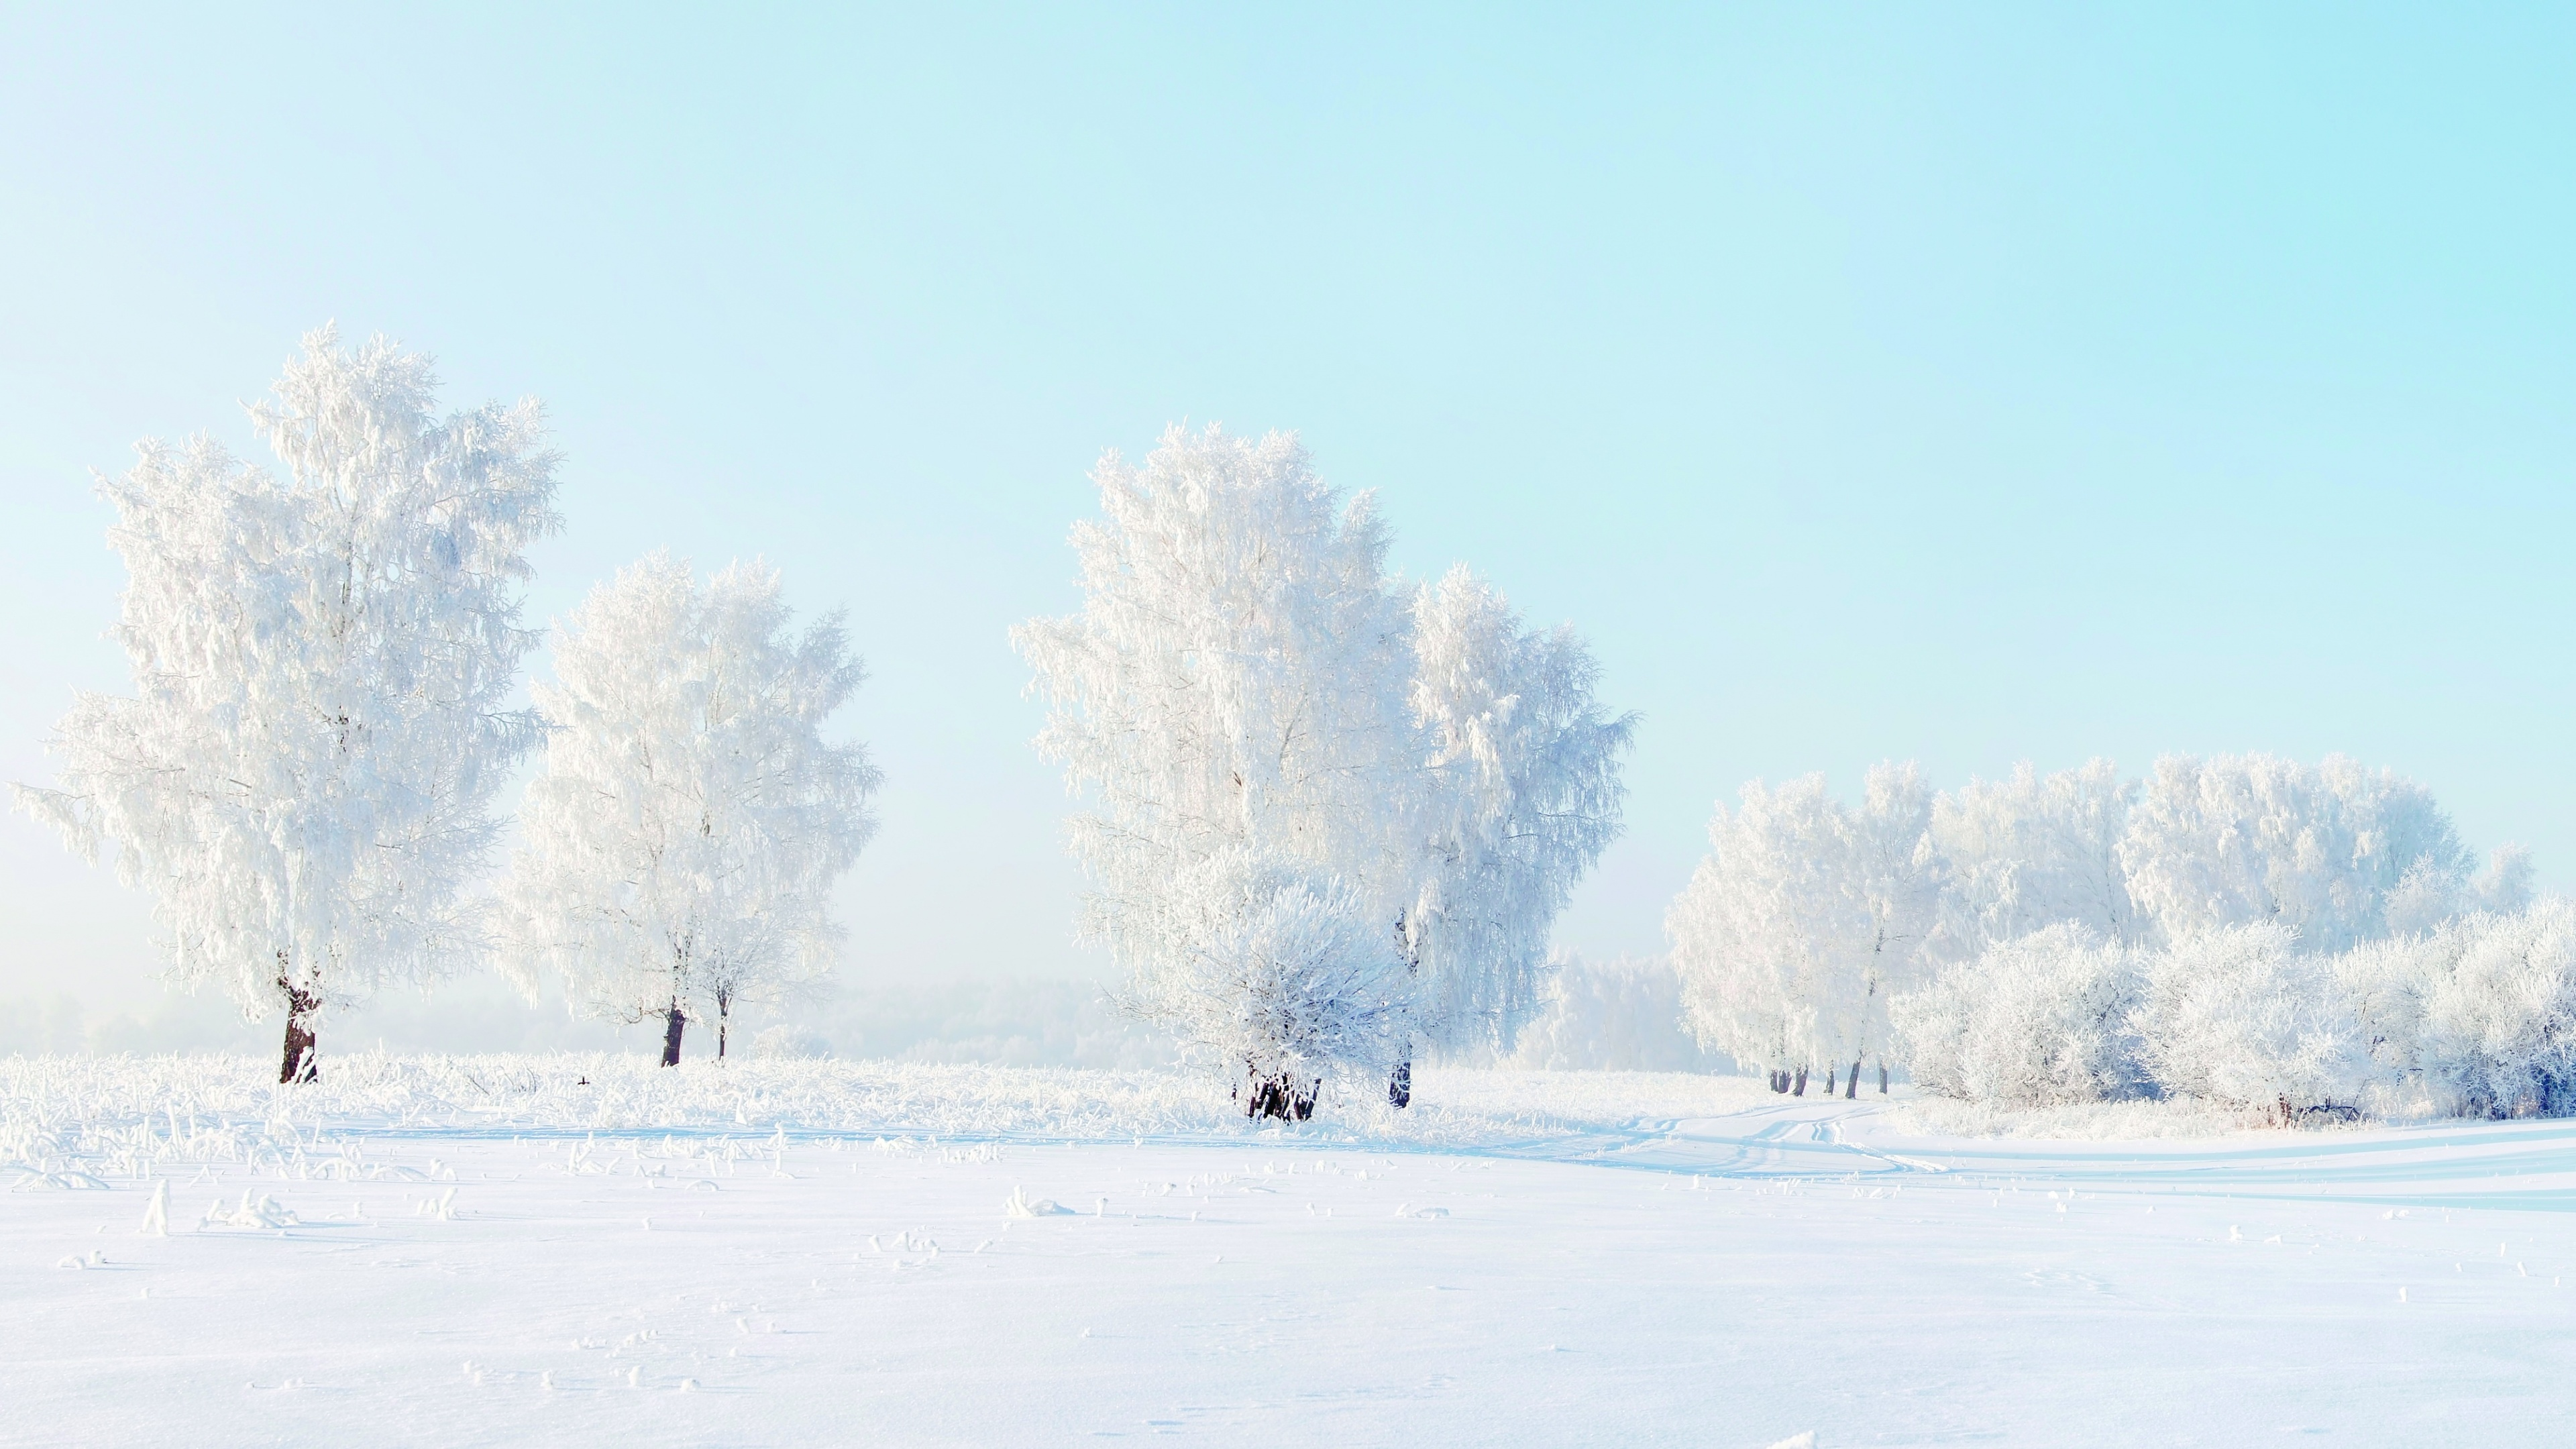 Winter Snow Trees Frost Wallpapers - 3840x2160 - 1706835: https://bhmpics.com/view-winter_snow_trees_frost-3840x2160.html